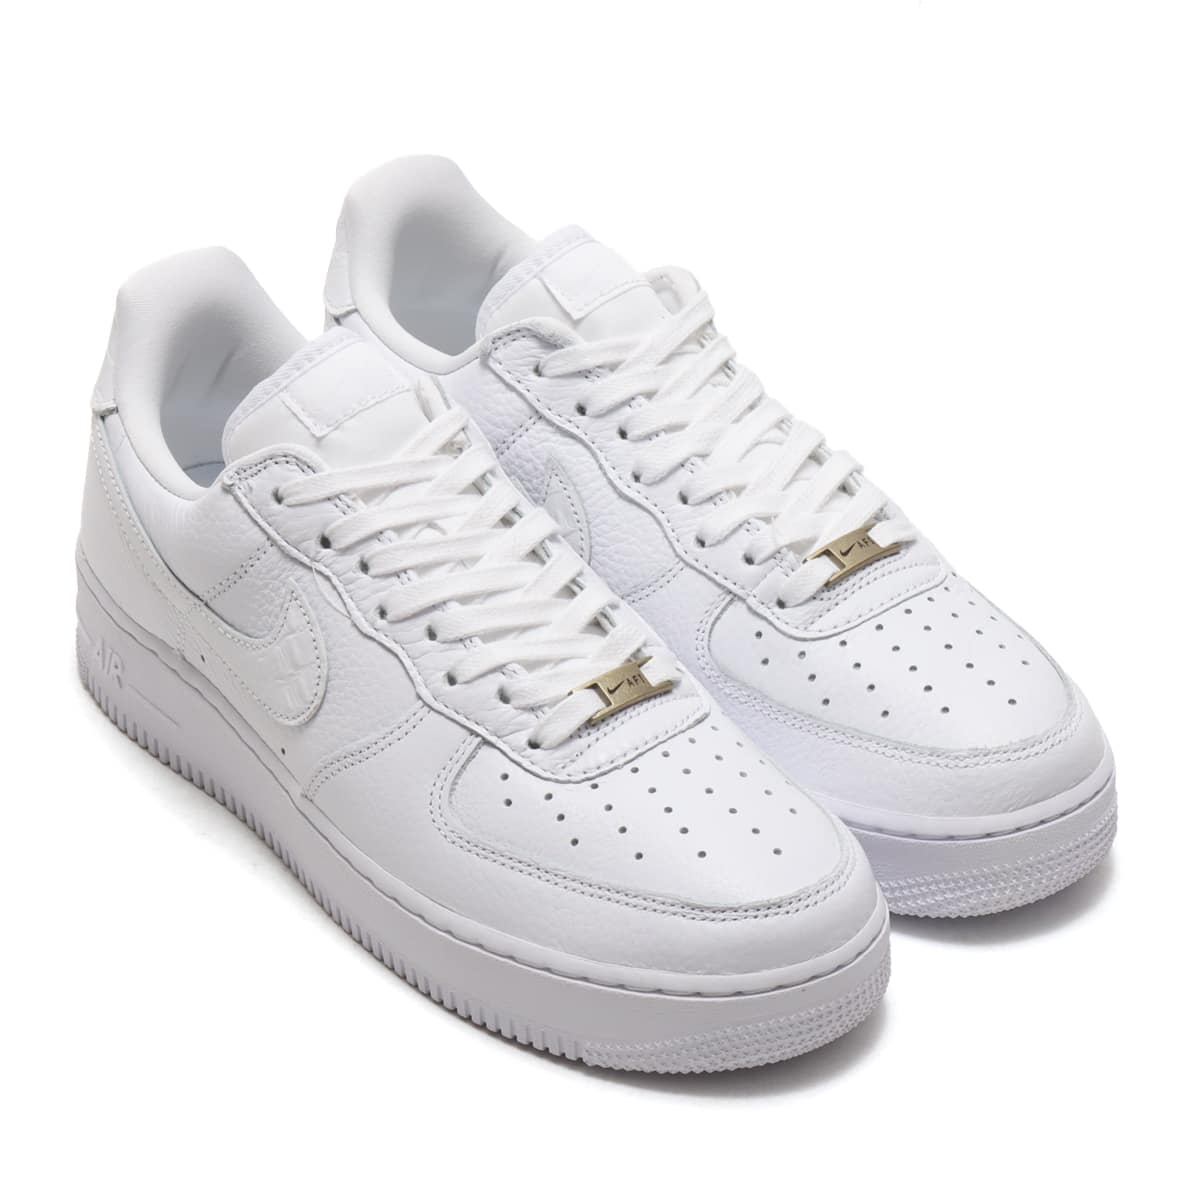 NIKE AIR FORCE 1 '07 CRAFT WHITE/WHITE-WHITE-WHITE 21SU-I_photo_large